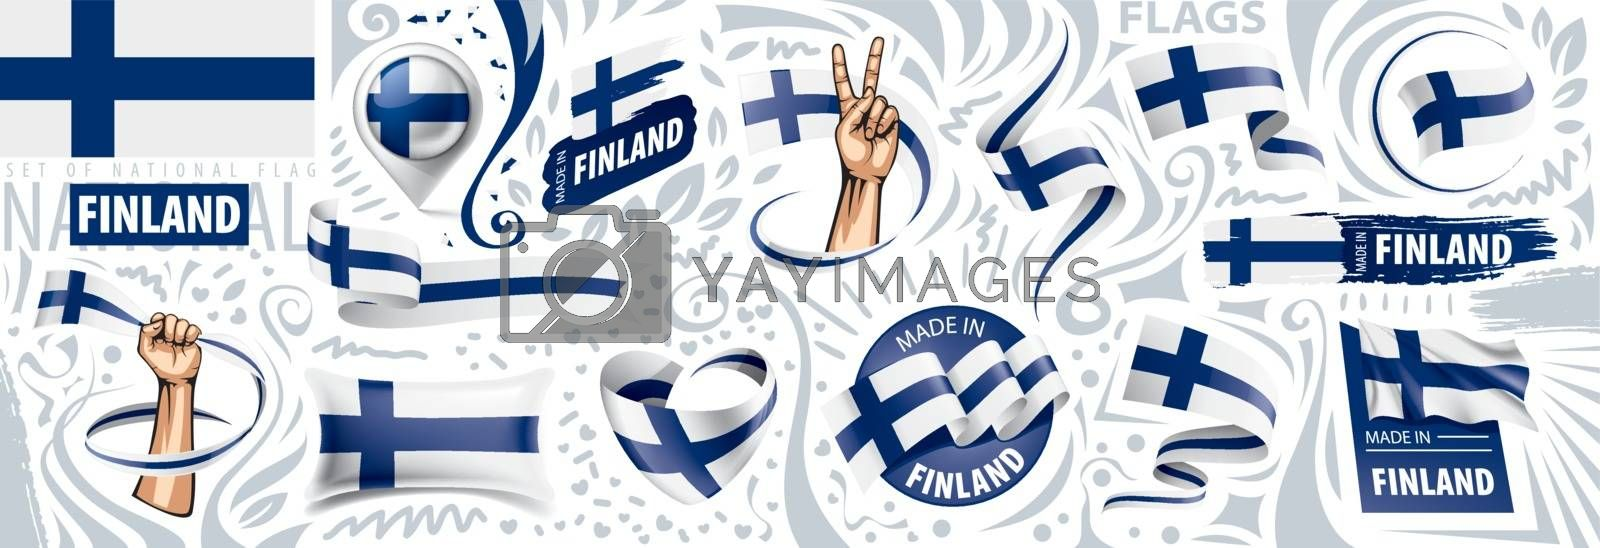 Vector set of the national flag of Finland in various creative designs.